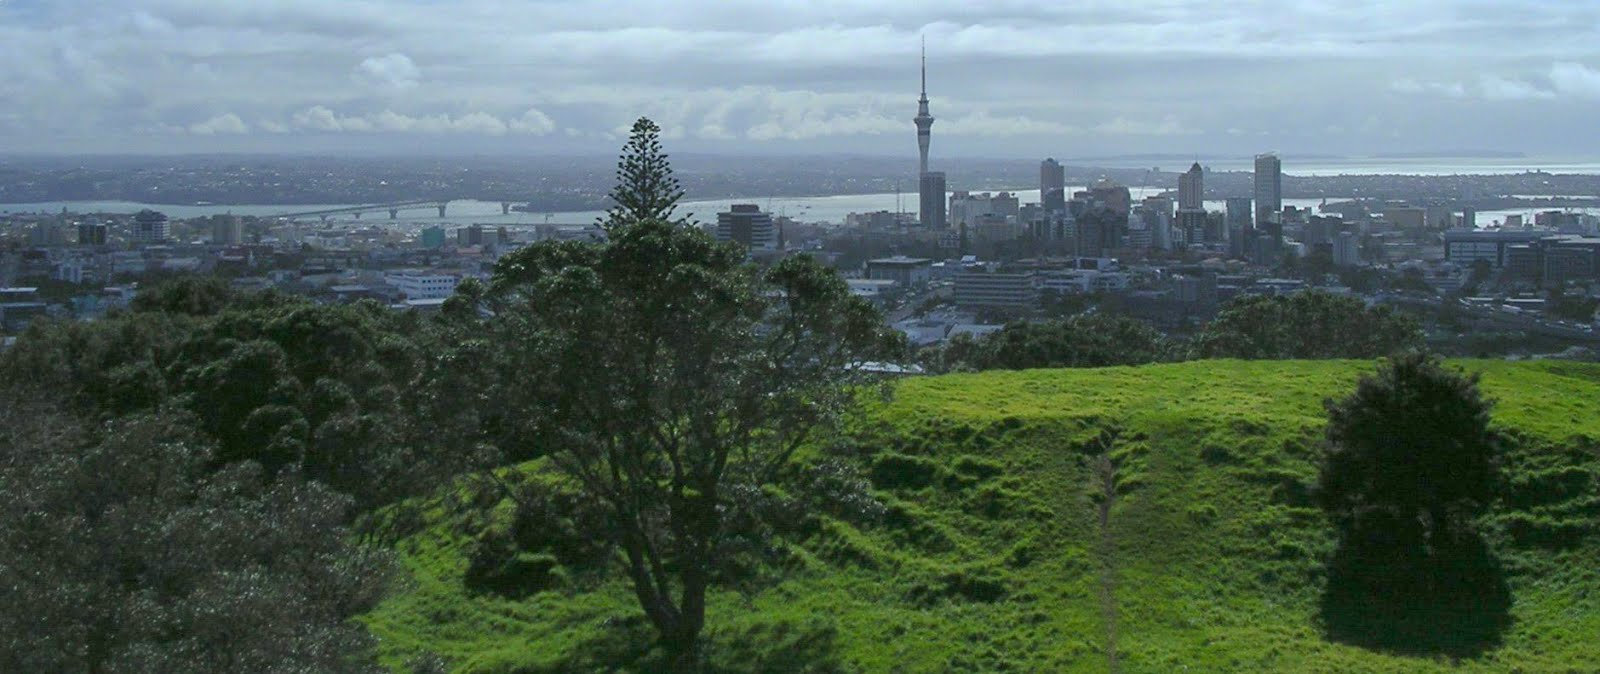 View_of_Aukland_from_outside_city.JPG